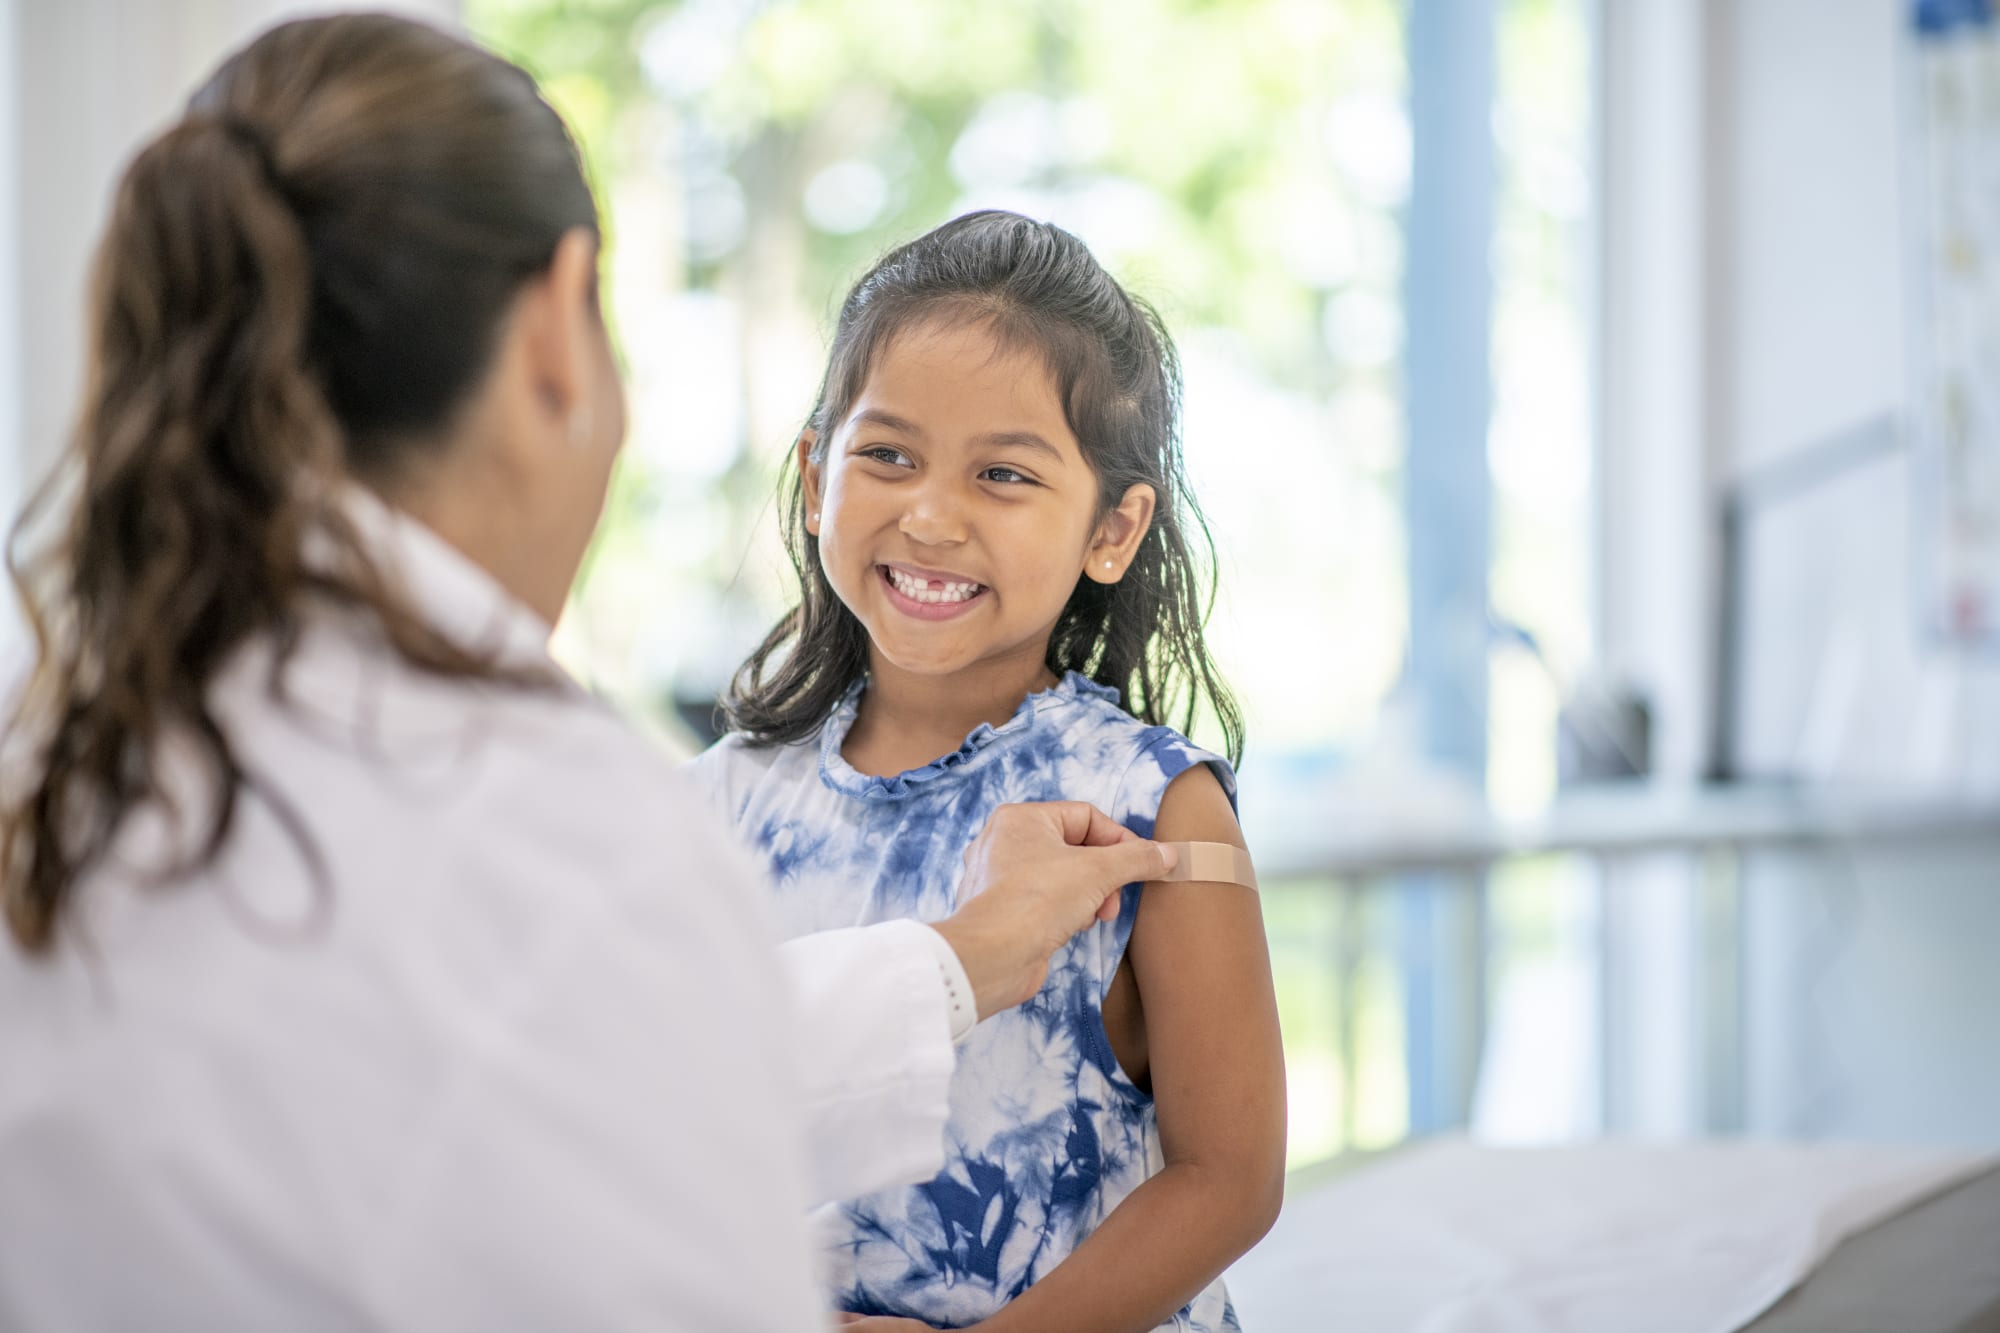 child interacts with the female Hispanic doctor at a medical appointment.